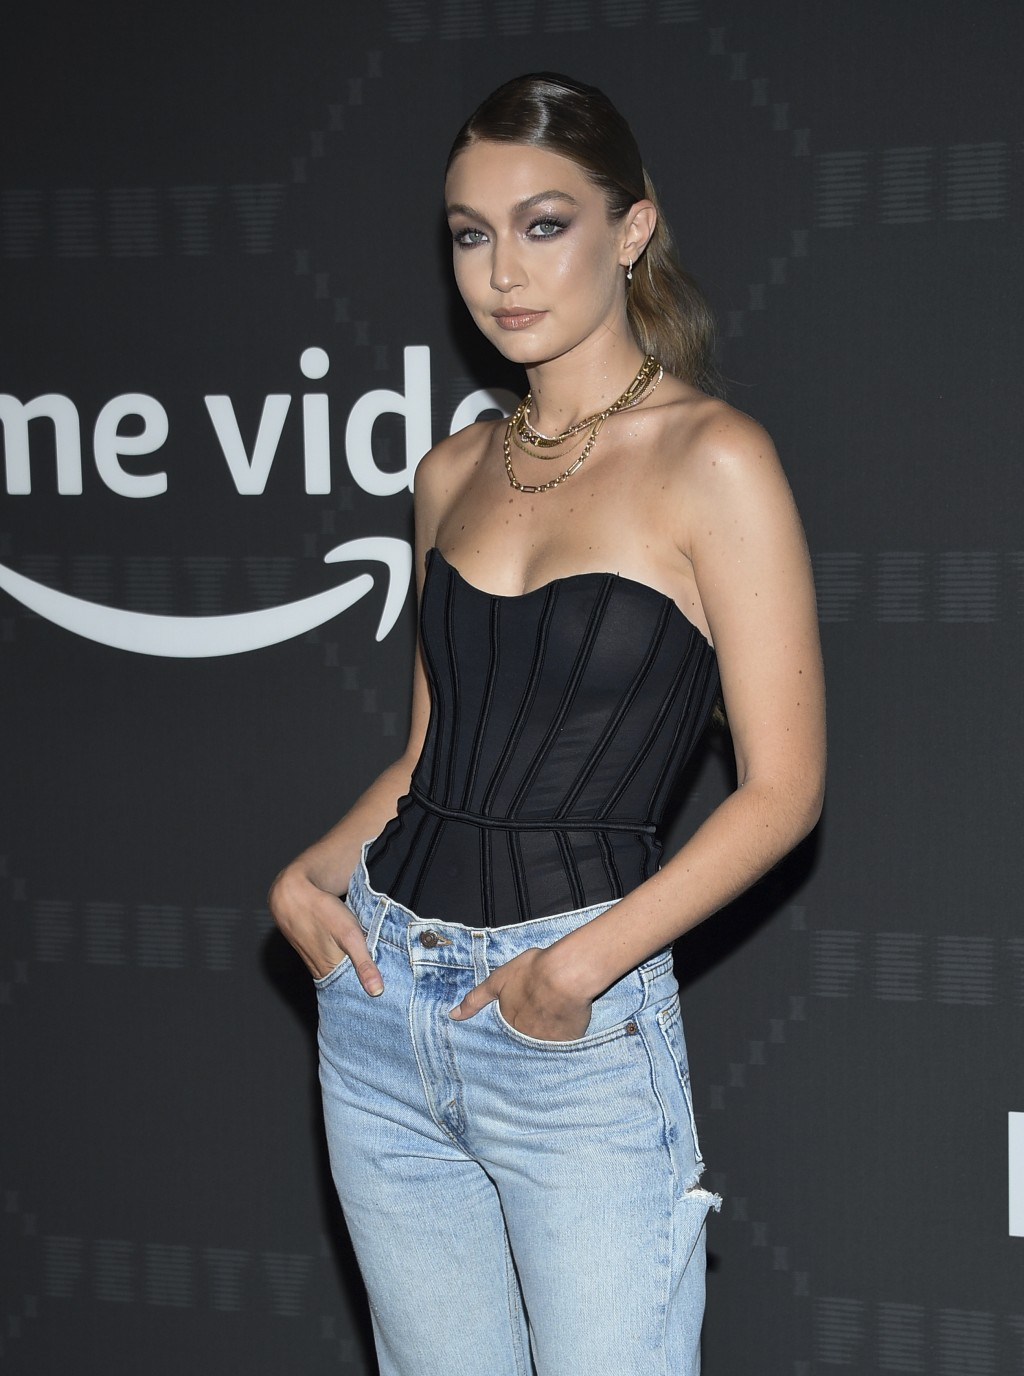 Model Gigi Hadid attends the Spring/Summer 2020 Savage X Fenty show, presented by Amazon Prime, at the Barclays Center on Tuesday, Sept, 10, 2019, in ...